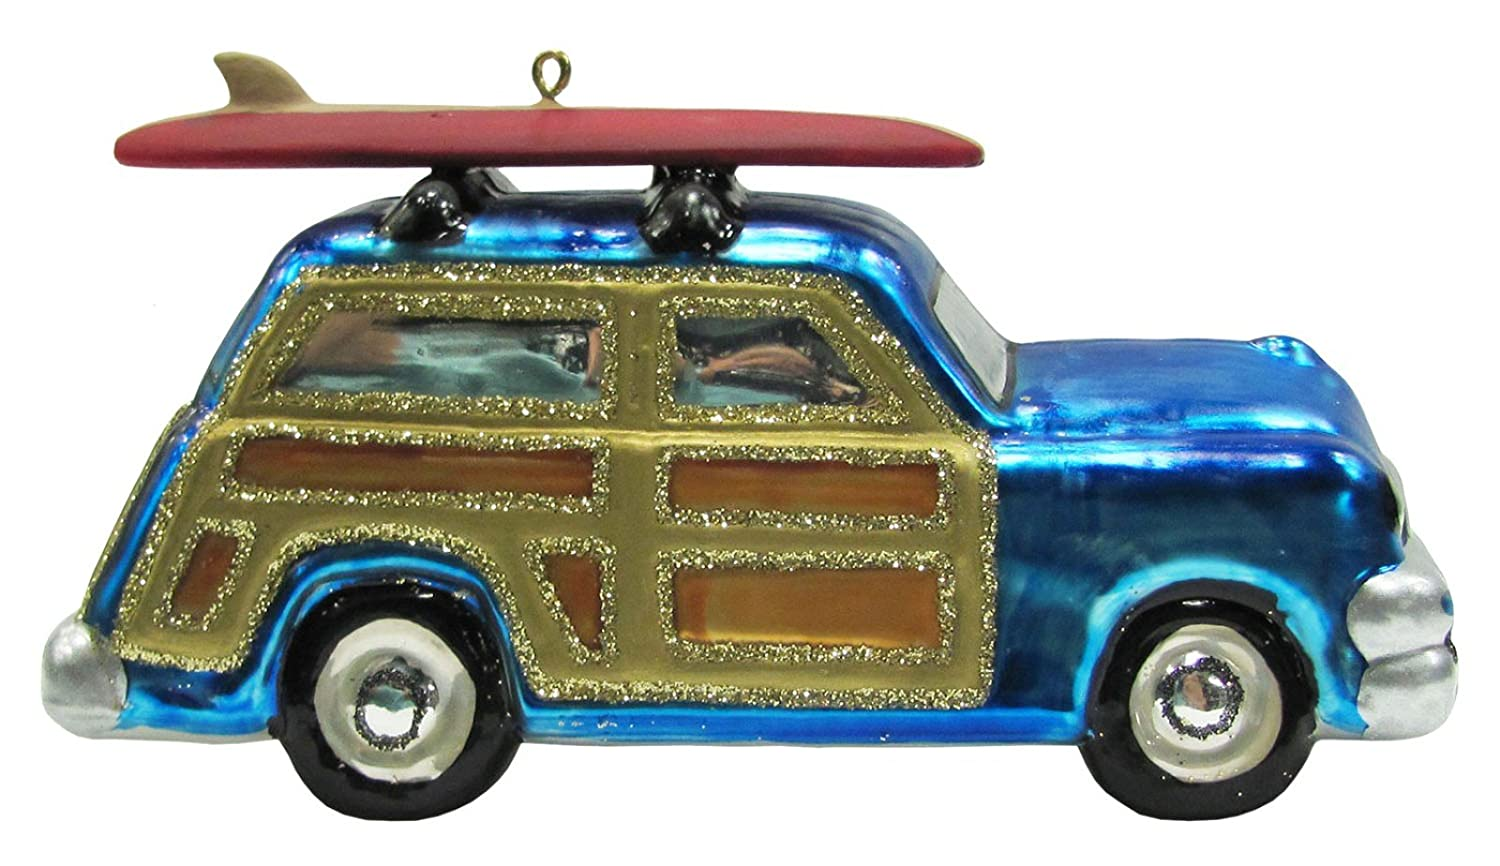 Surfboard on Blue Woody